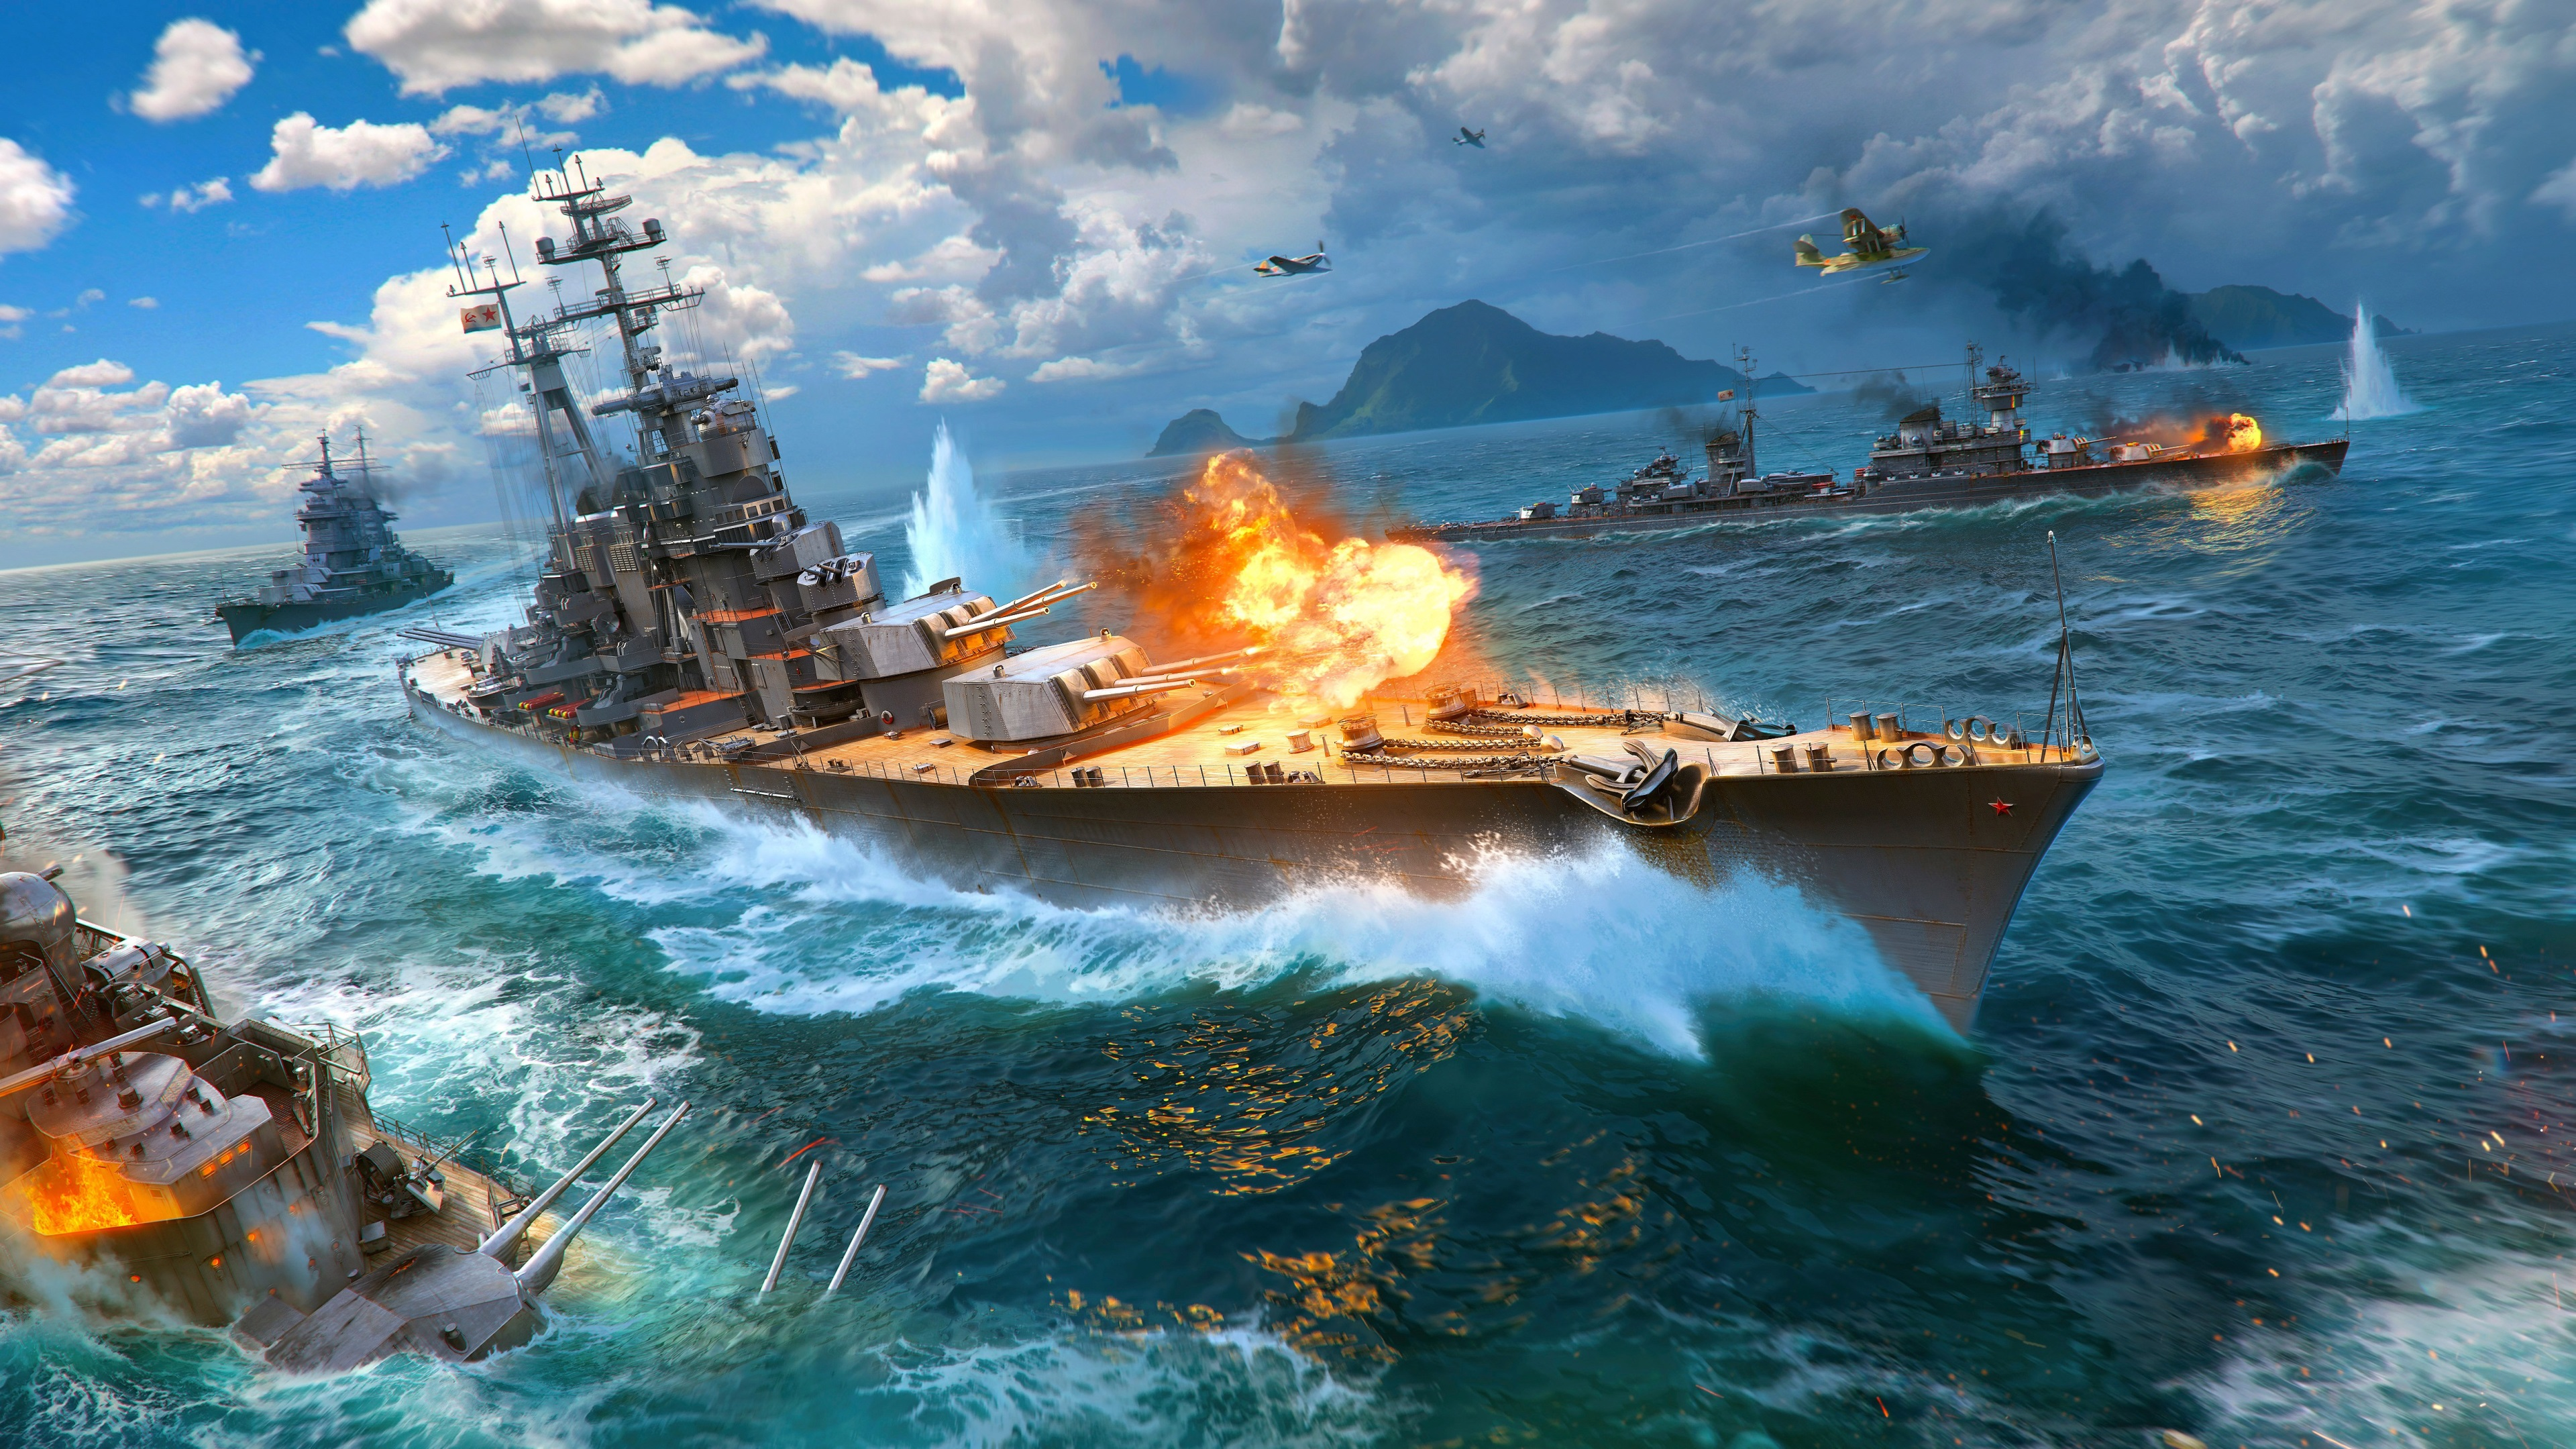 World Of Warships 2303335 Hd Wallpaper Backgrounds